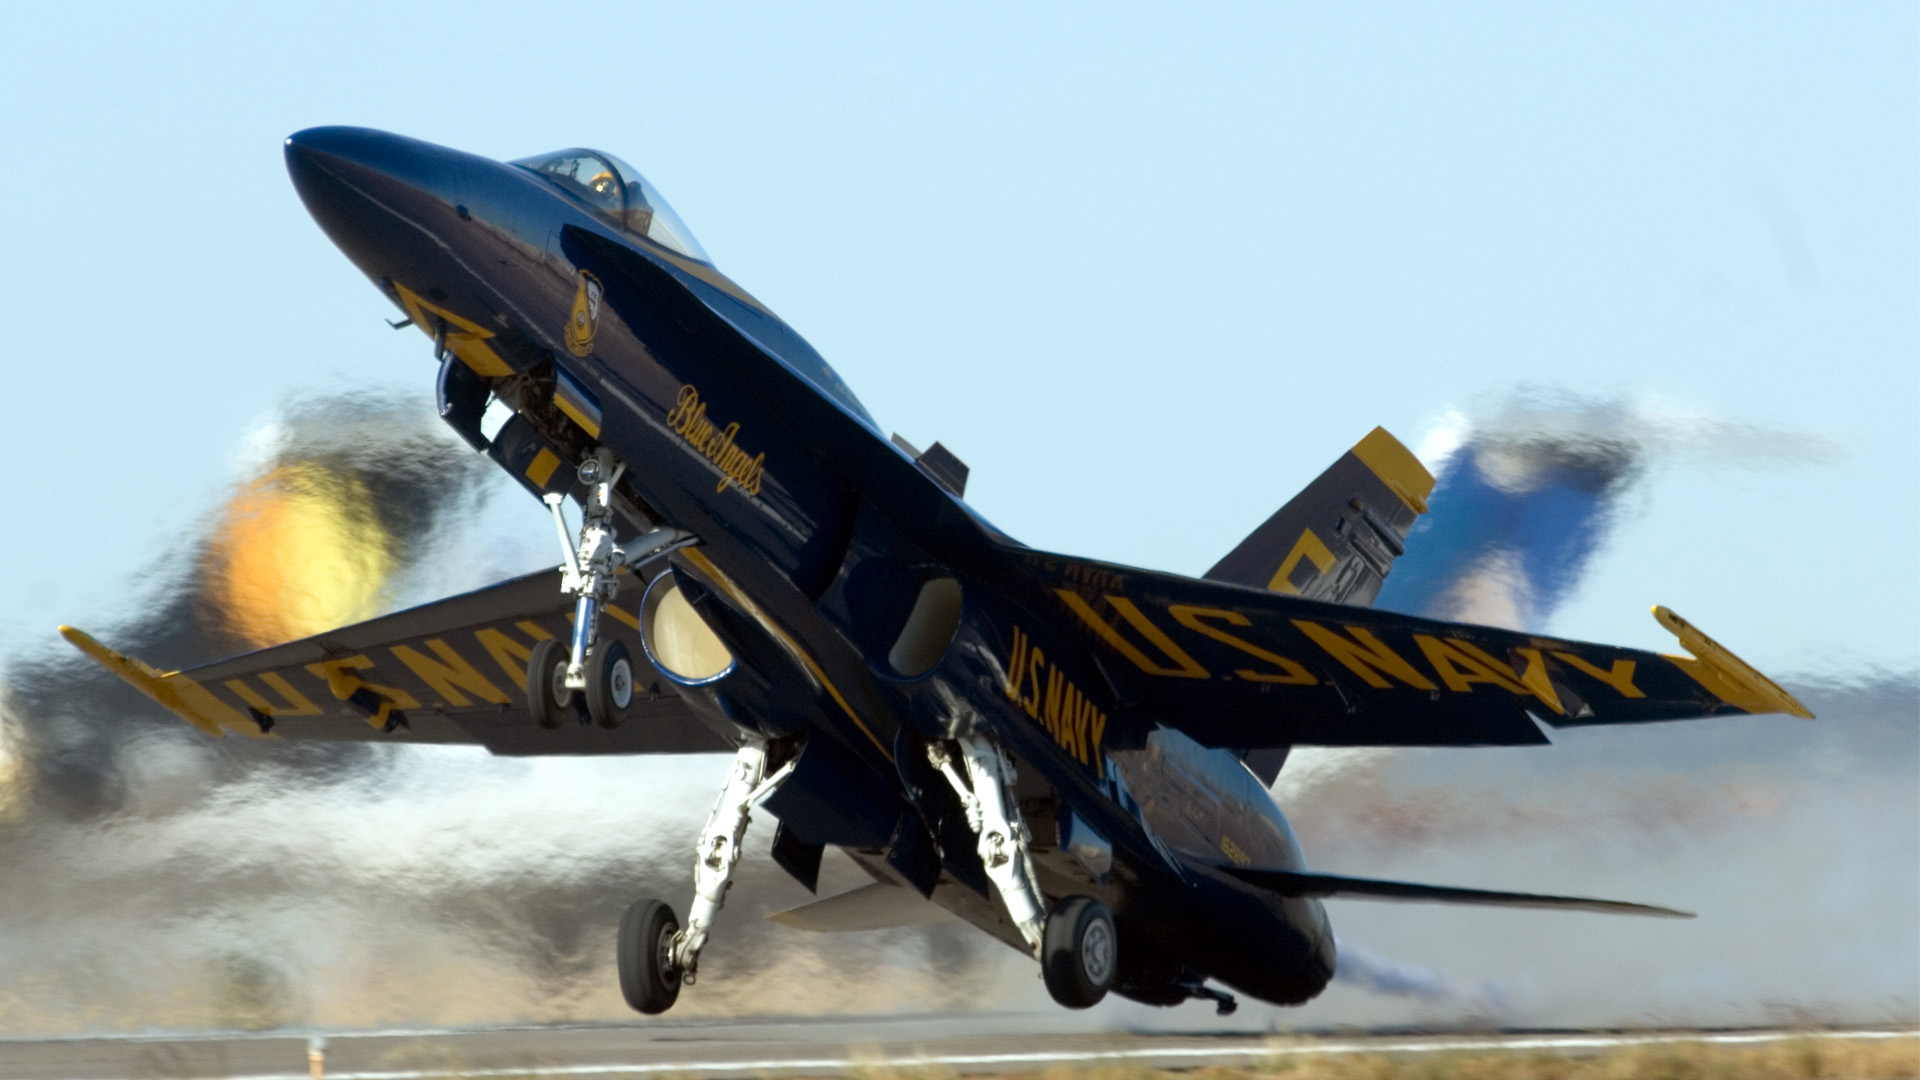 blue-angels-f-hornet-hd-1920×1080-wallpaper-wpc9003067